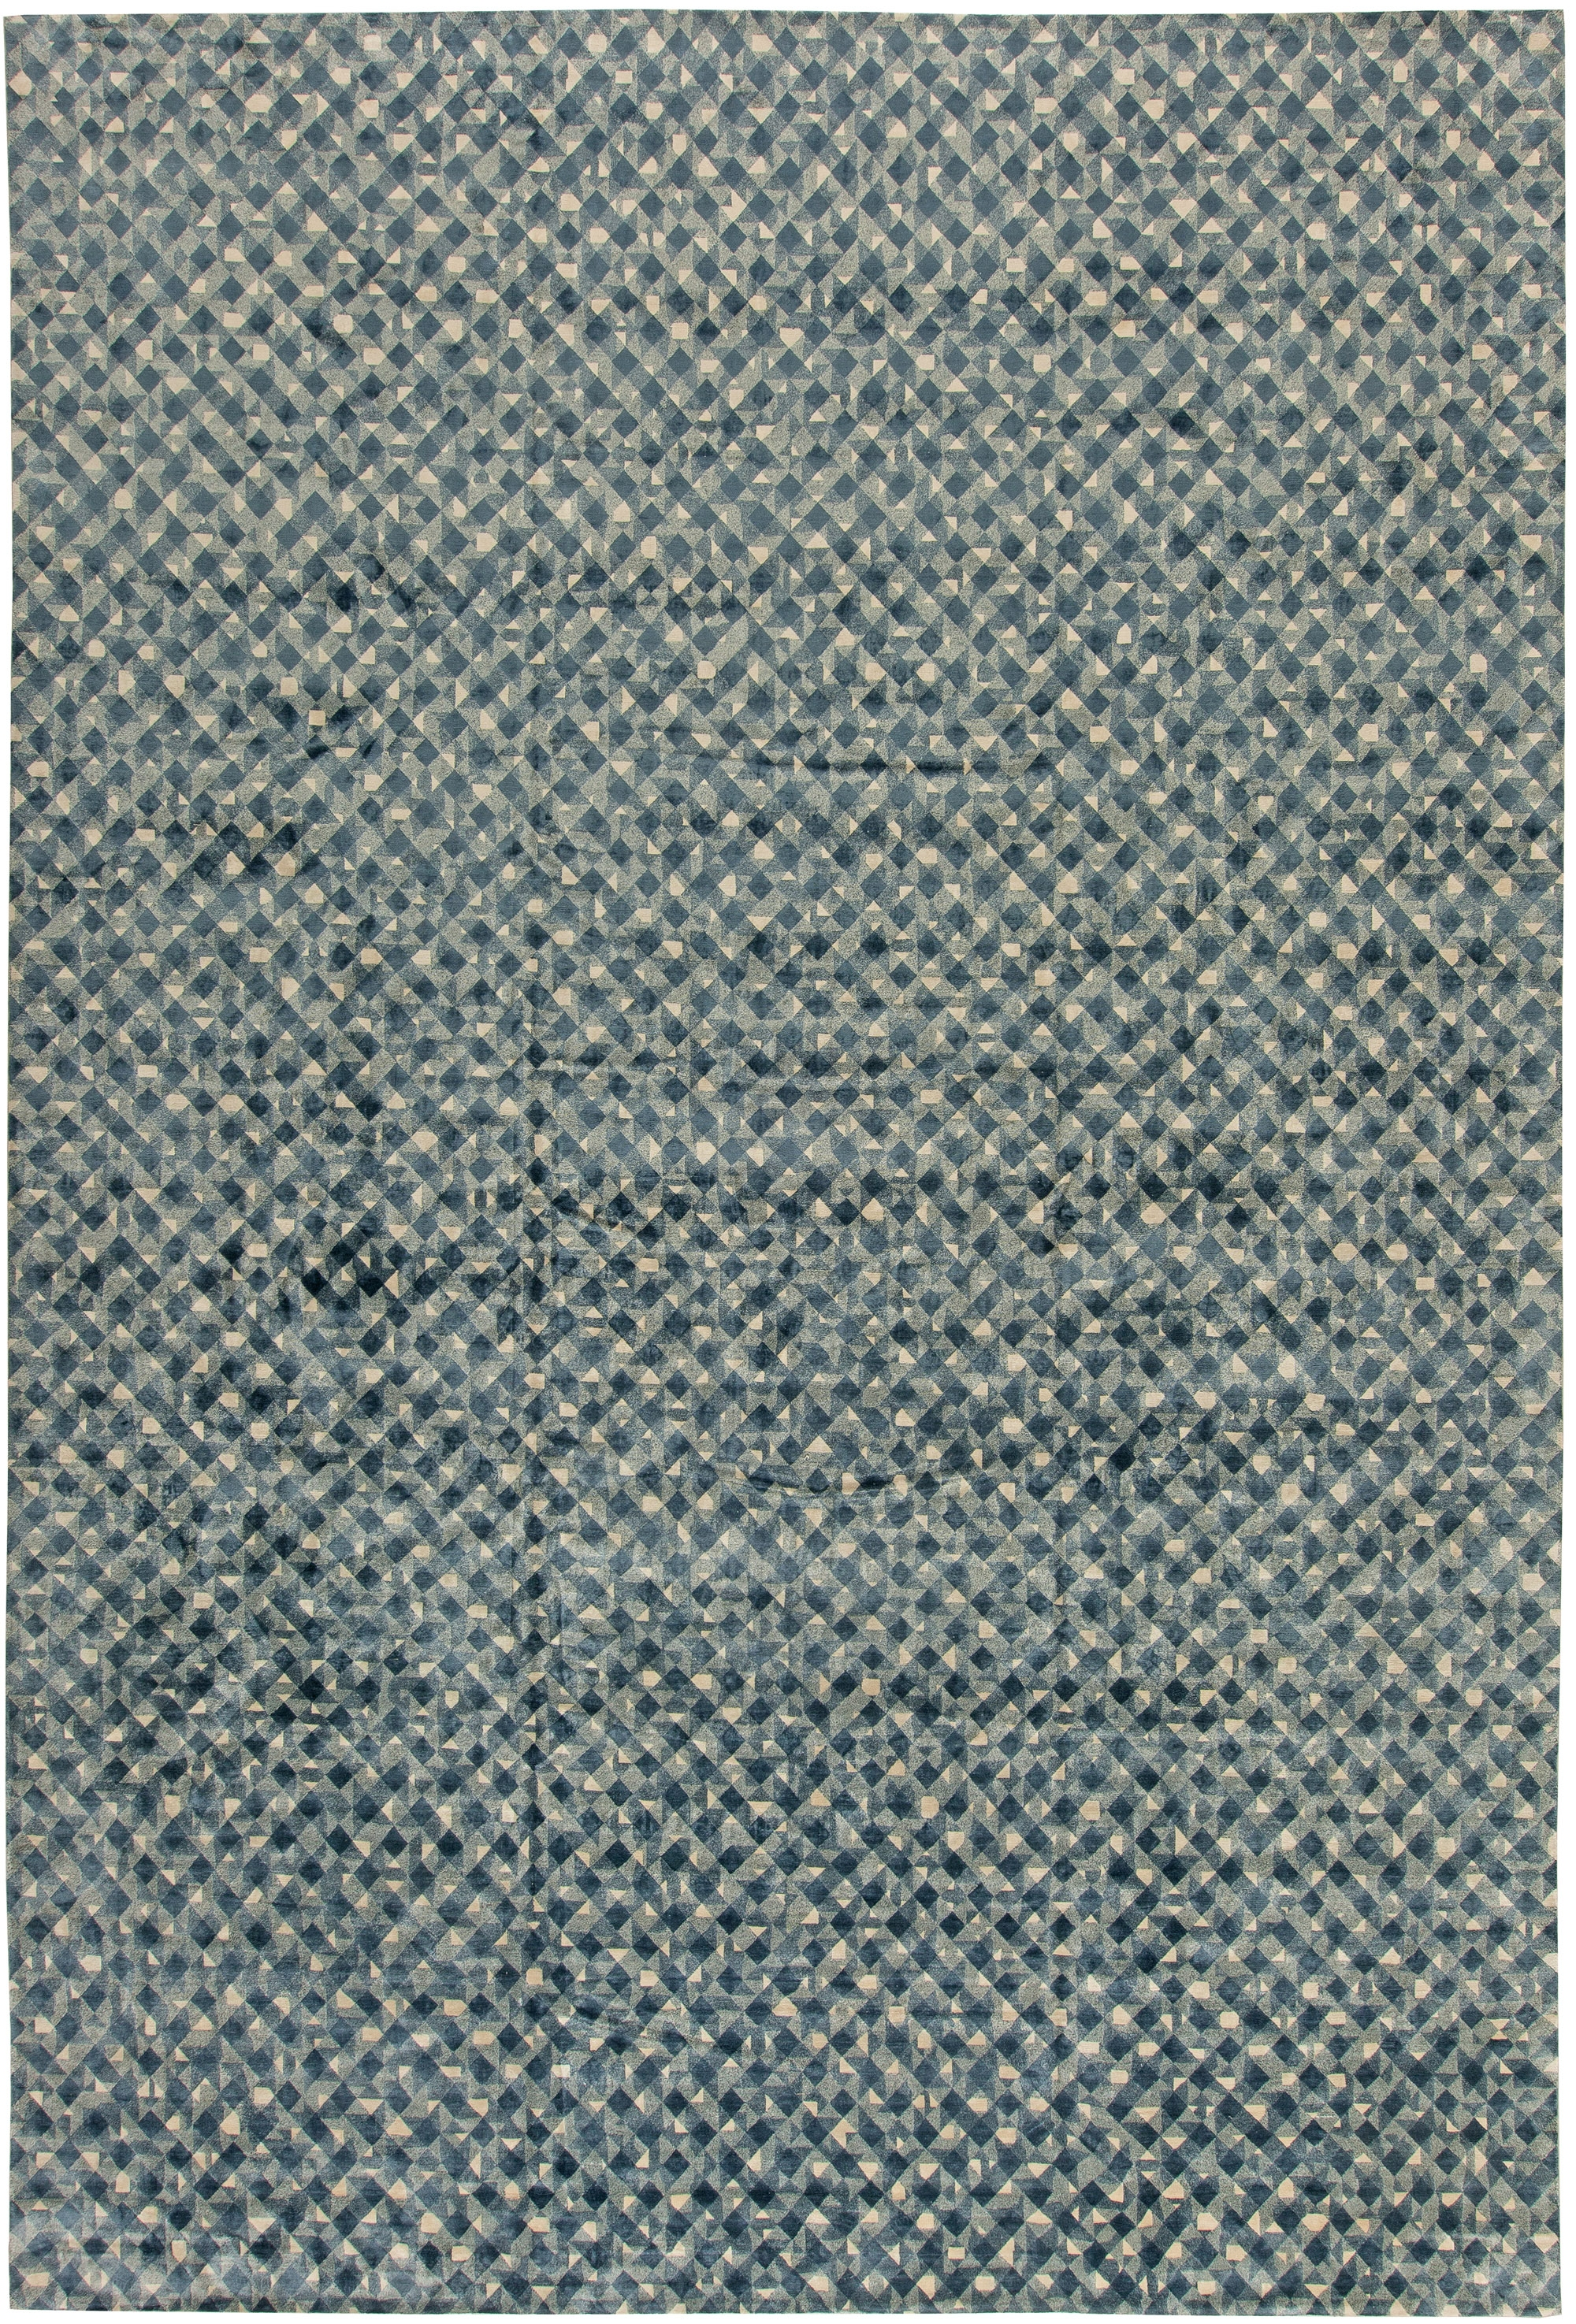 Contemporary Rug Pertaining To Contemorary Rugs (View 9 of 15)